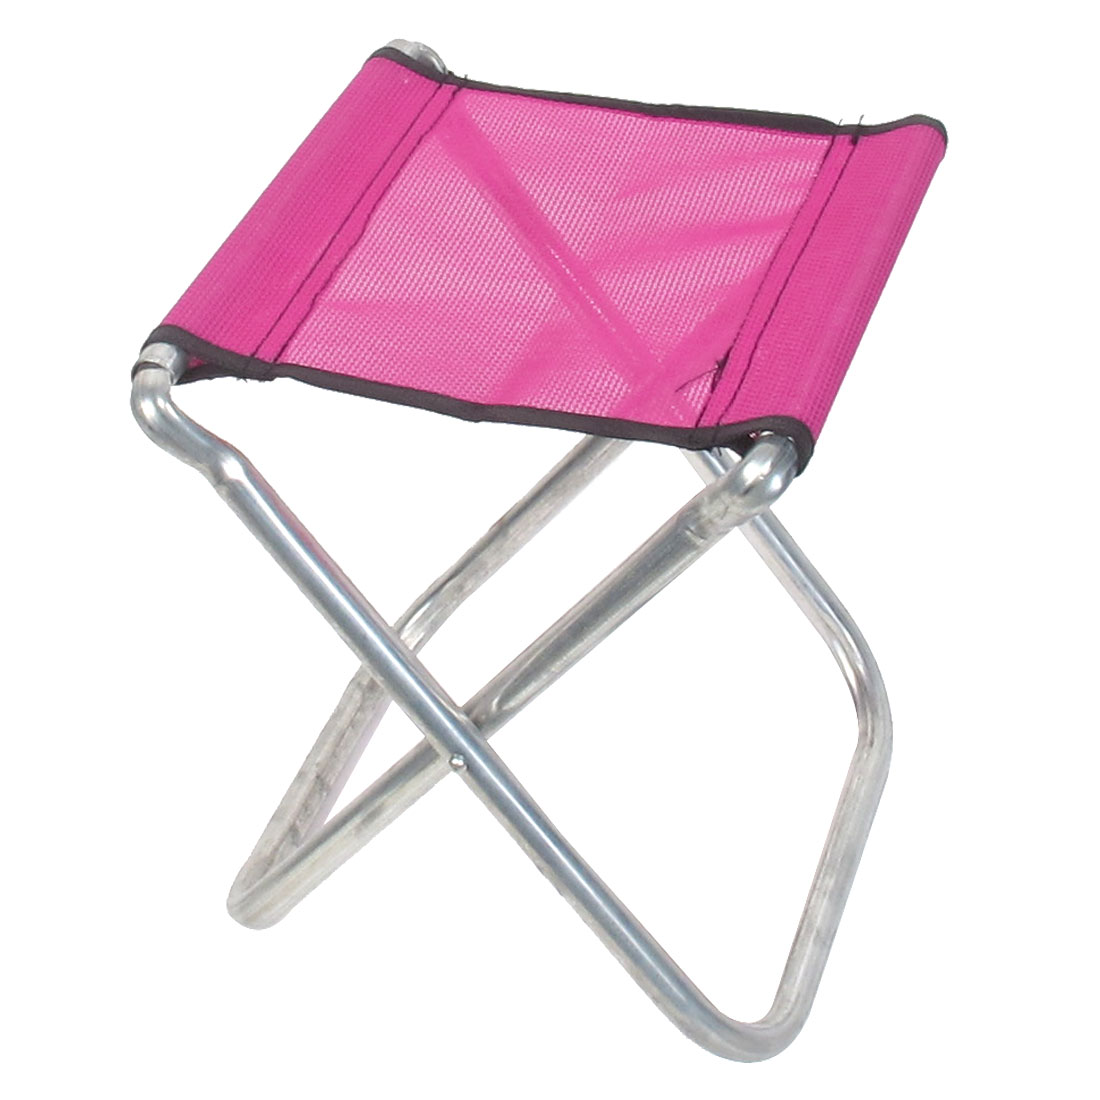 Outdoor Hiking Travel Metal Frame Nylon Seat Portable Folding Chair Stool Magenta